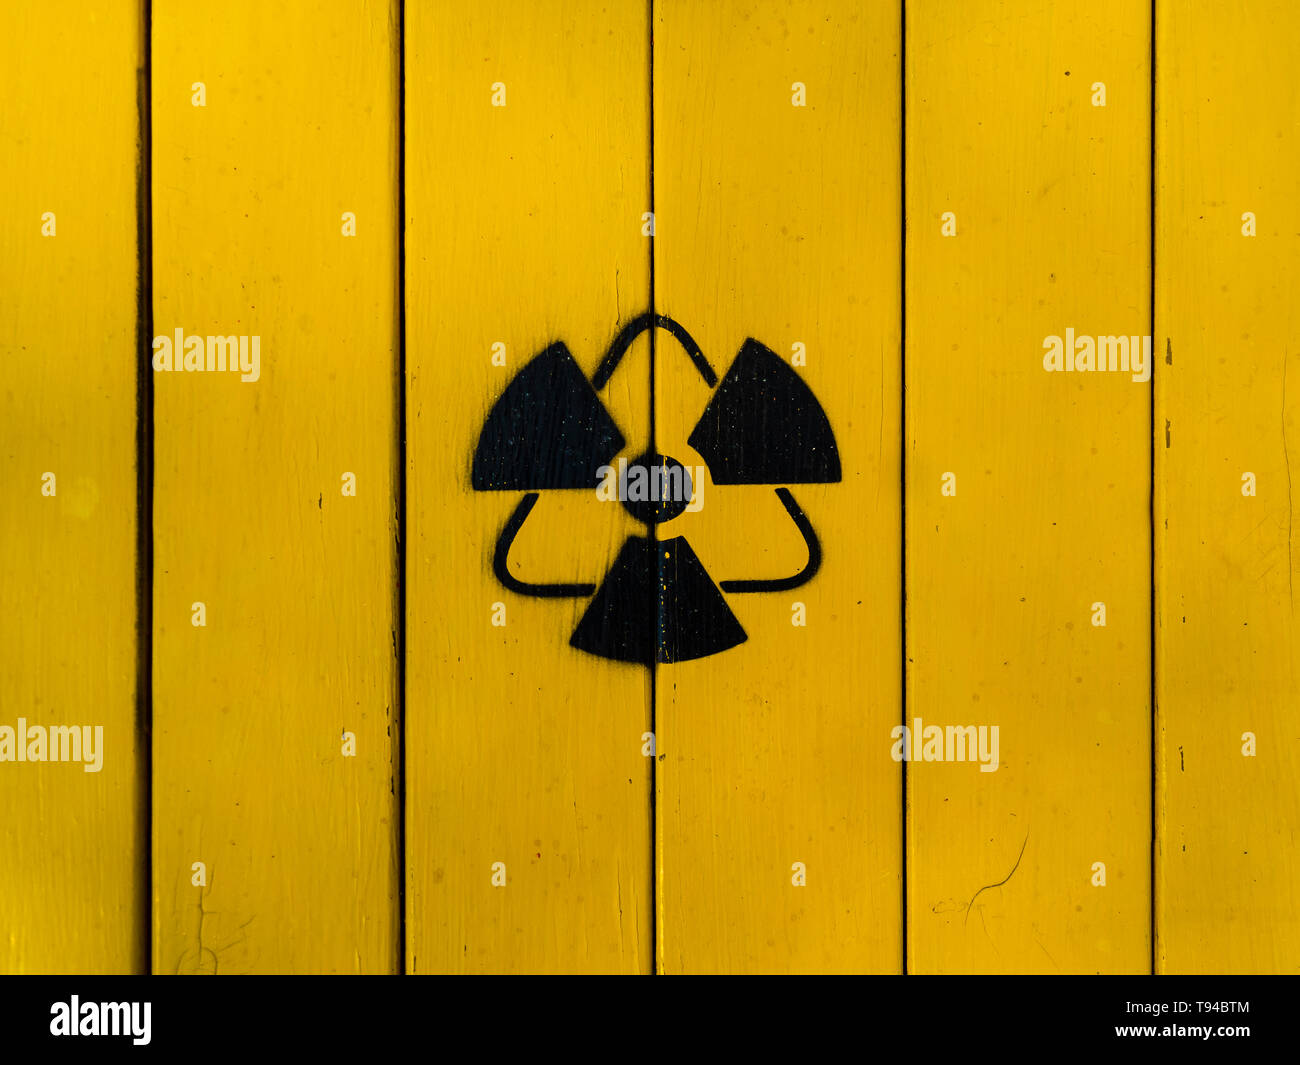 Sign of radiation on a yellow wooden board. Radioactive sign - symbol of radiation. Yellow and black radioactive hazard (ionizing radiation) nuclear d - Stock Image